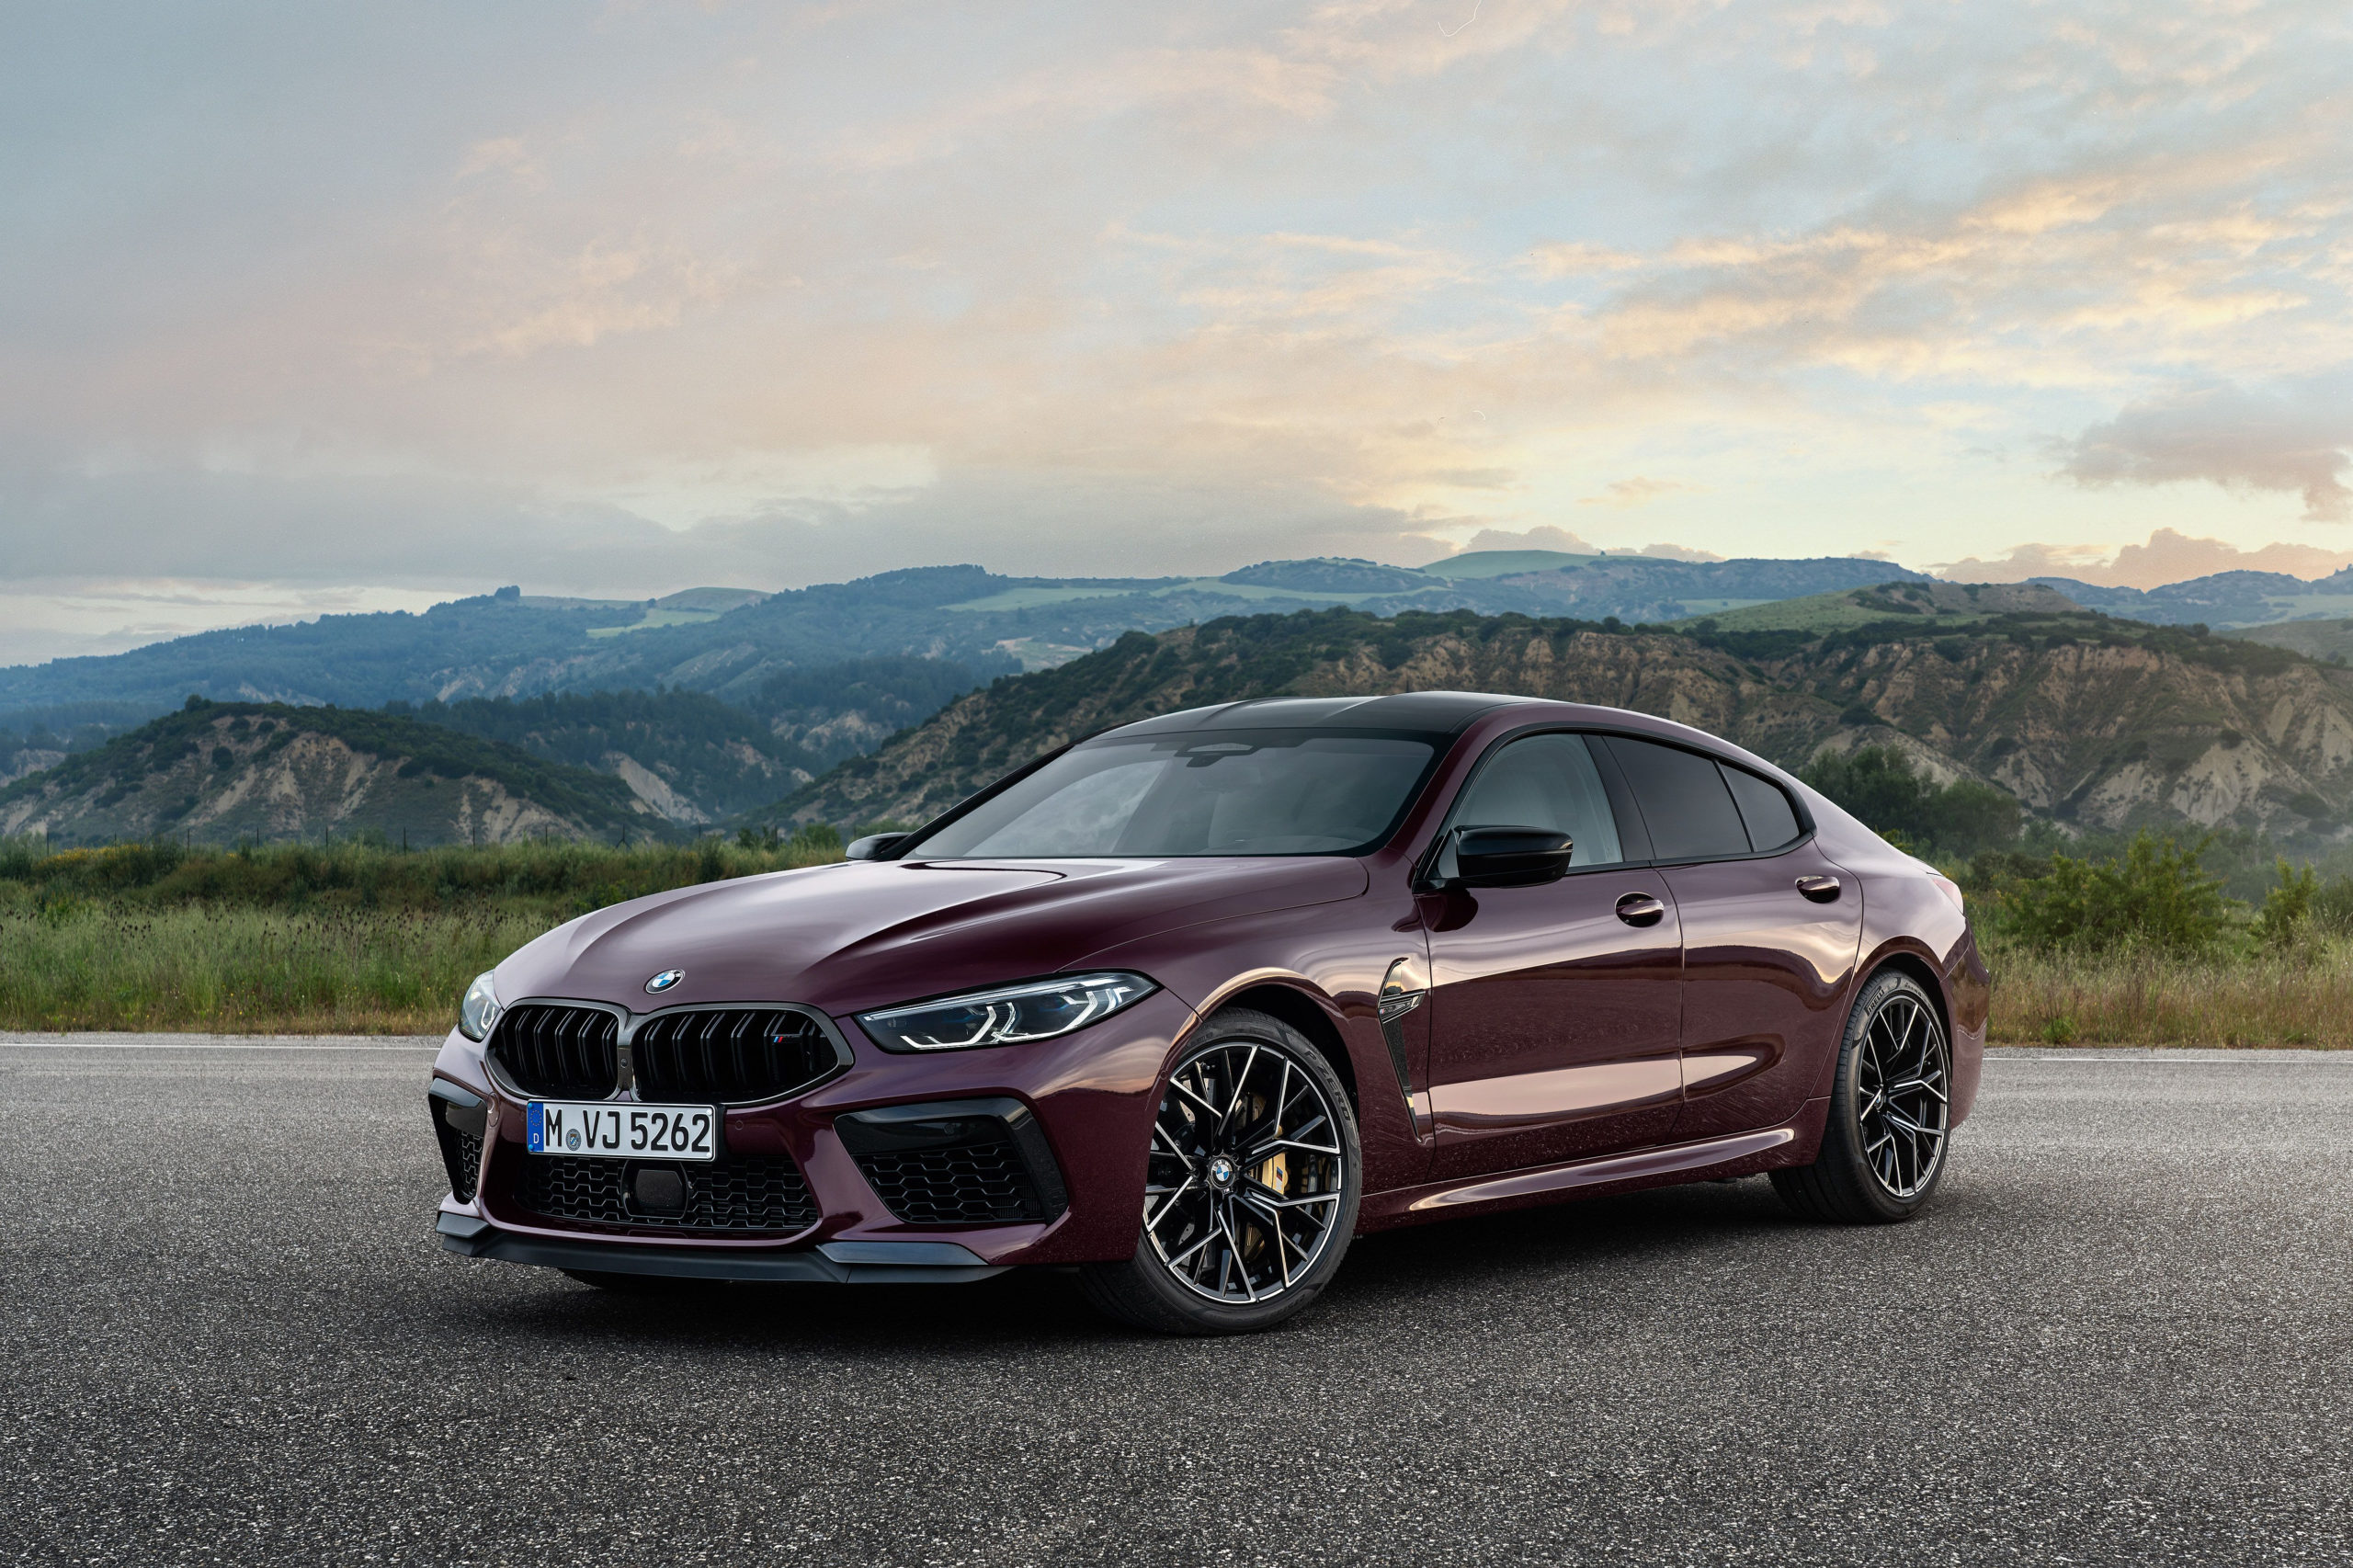 2020 BMW M8 Gran Coupe Review, Pricing, and Specs